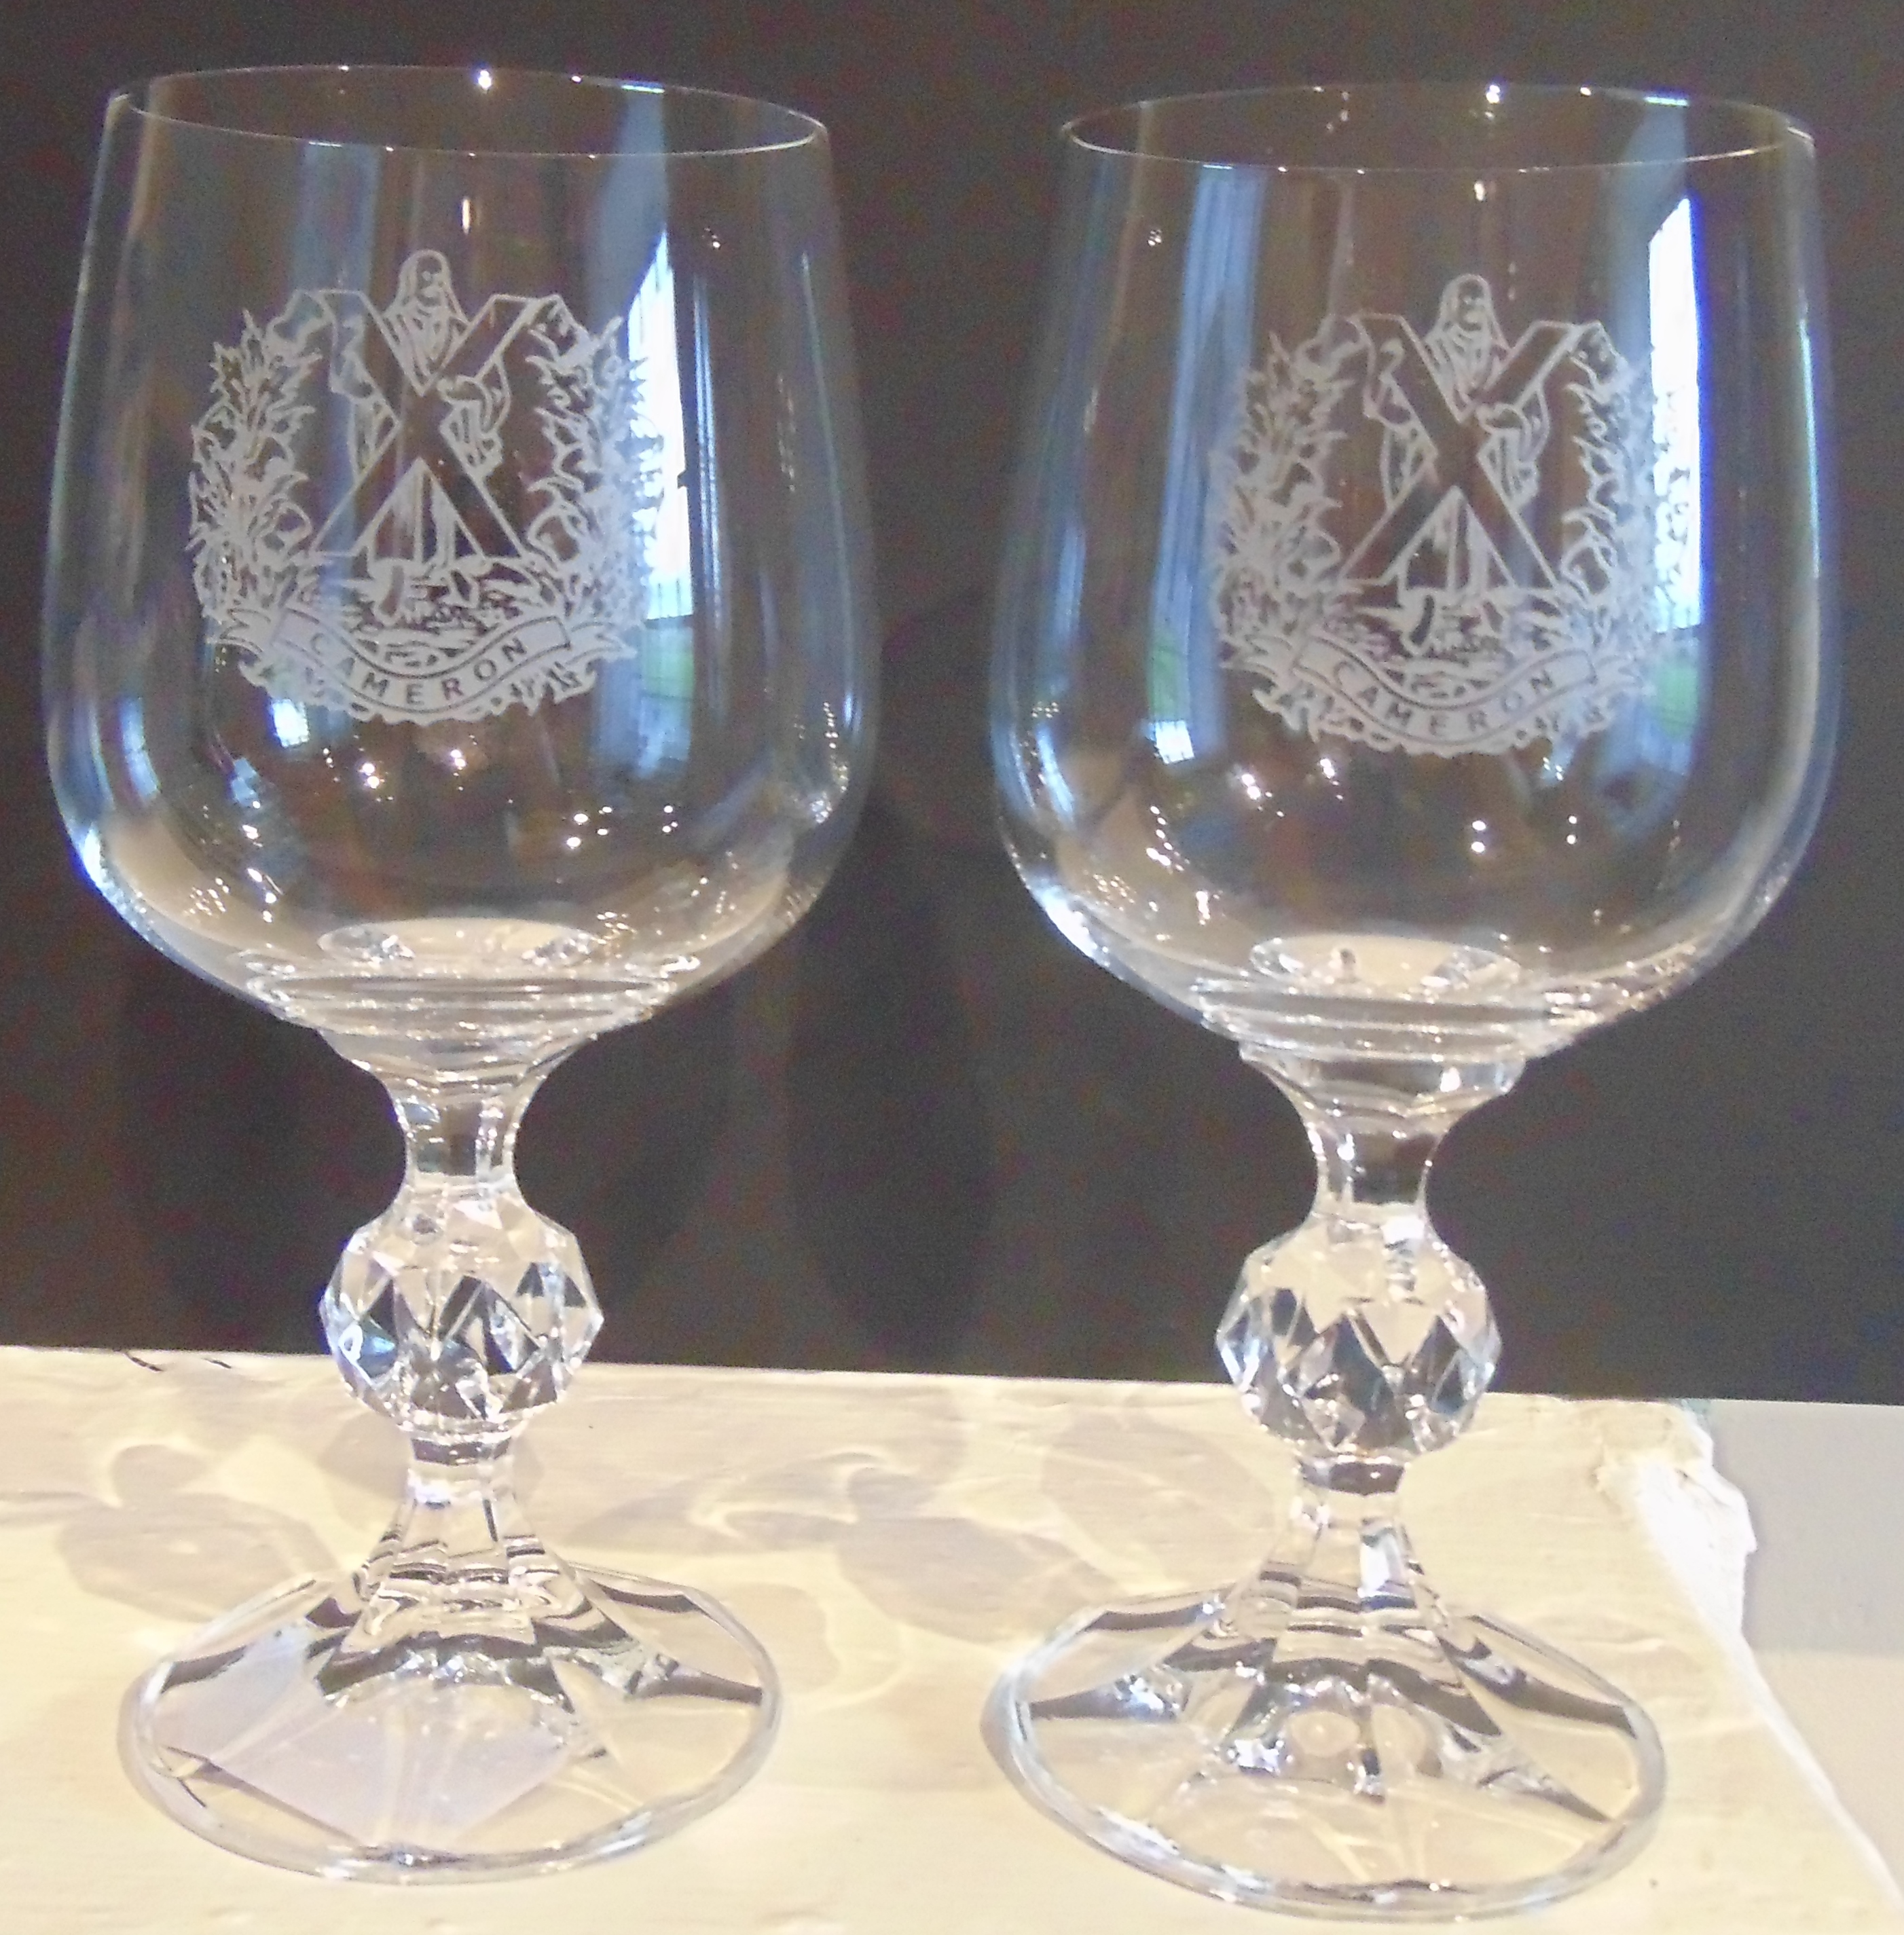 Wine Glasses - The Queens Own Cameron Highlanders set of two